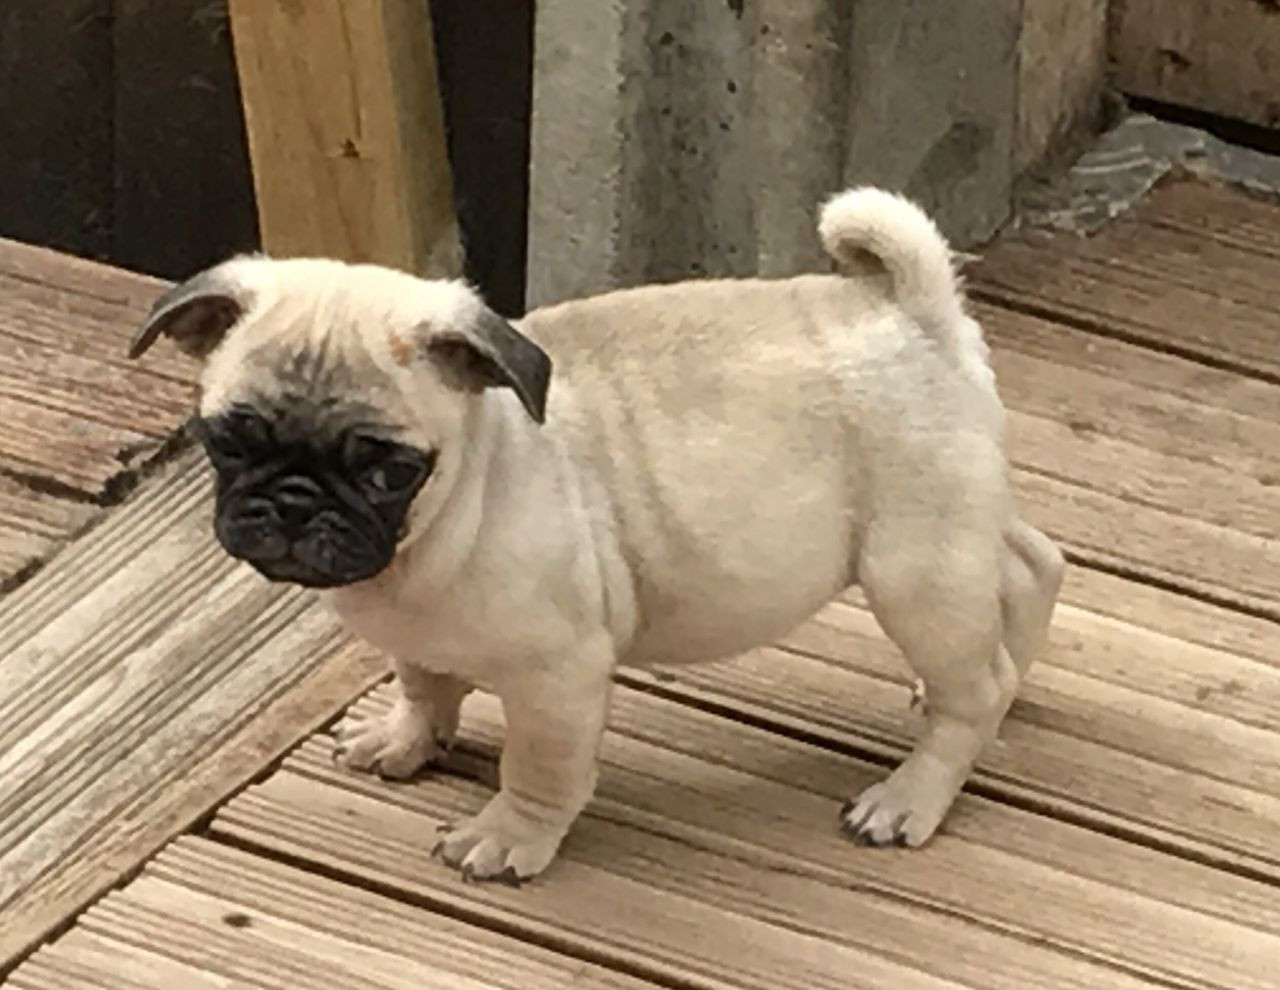 Pug Puppies For Sale Queen City Drive Charlotte Nc 234023